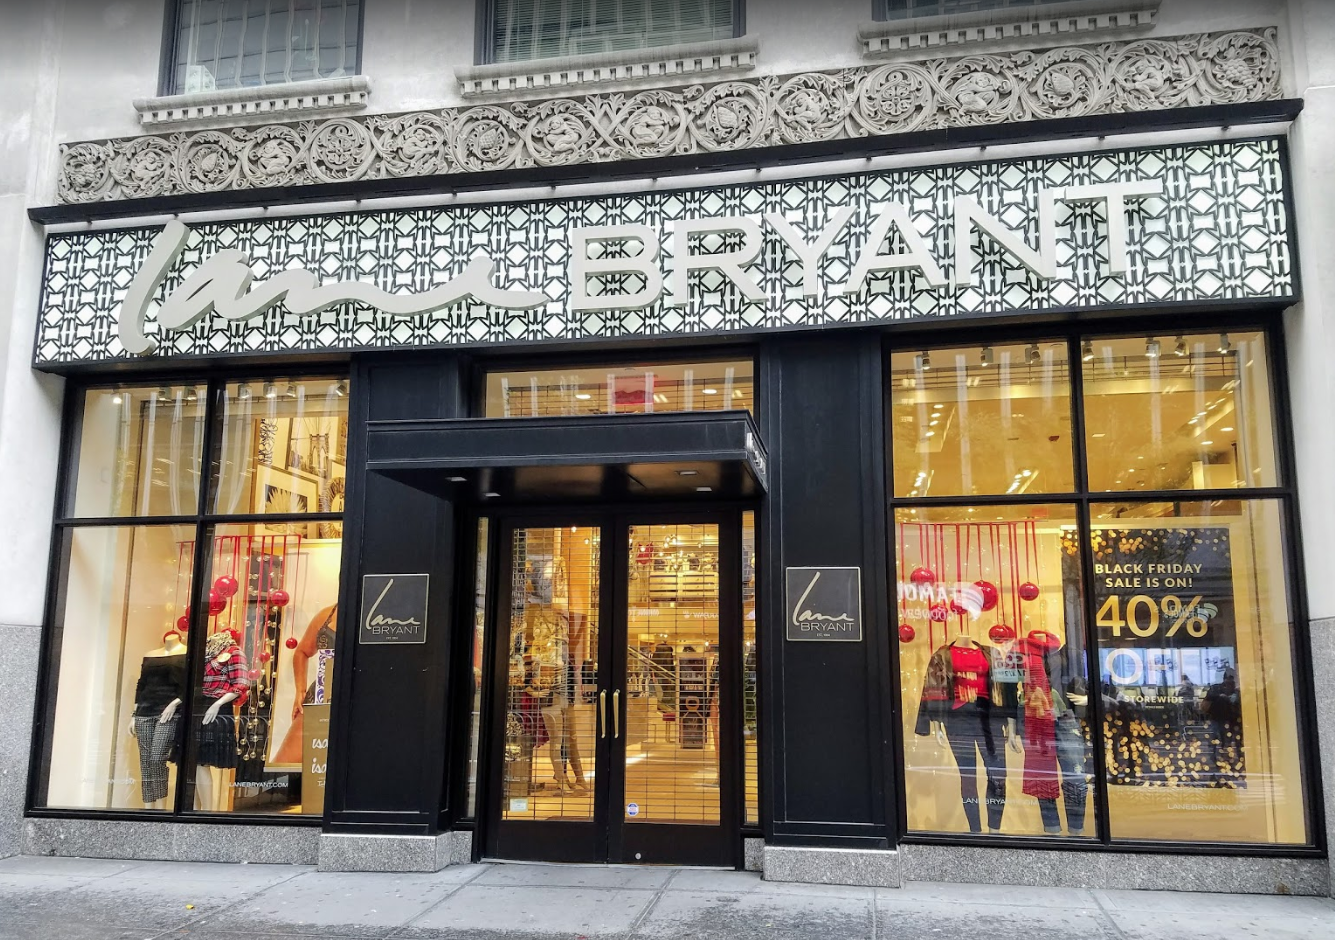 Exterior view of the Lane Bryant flagship retail store at Herald Square in Midtown Manhattan, with a tiled background behind the logo. MEP designed by 2L Engineering.